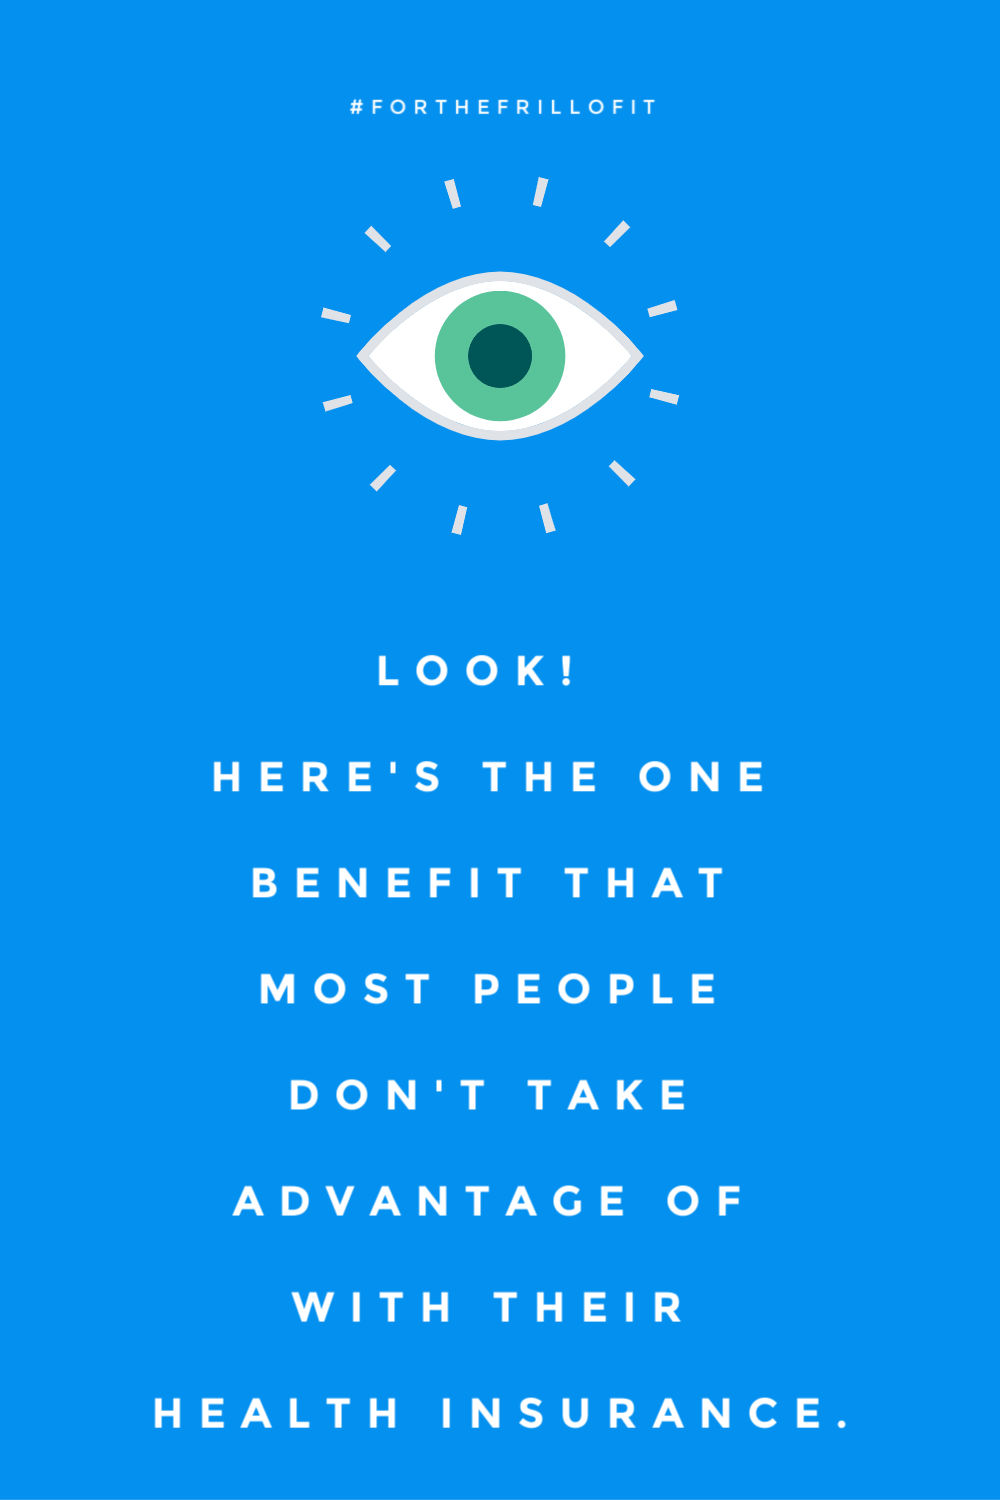 Take advantage of your optical benefits through your medical insurance.